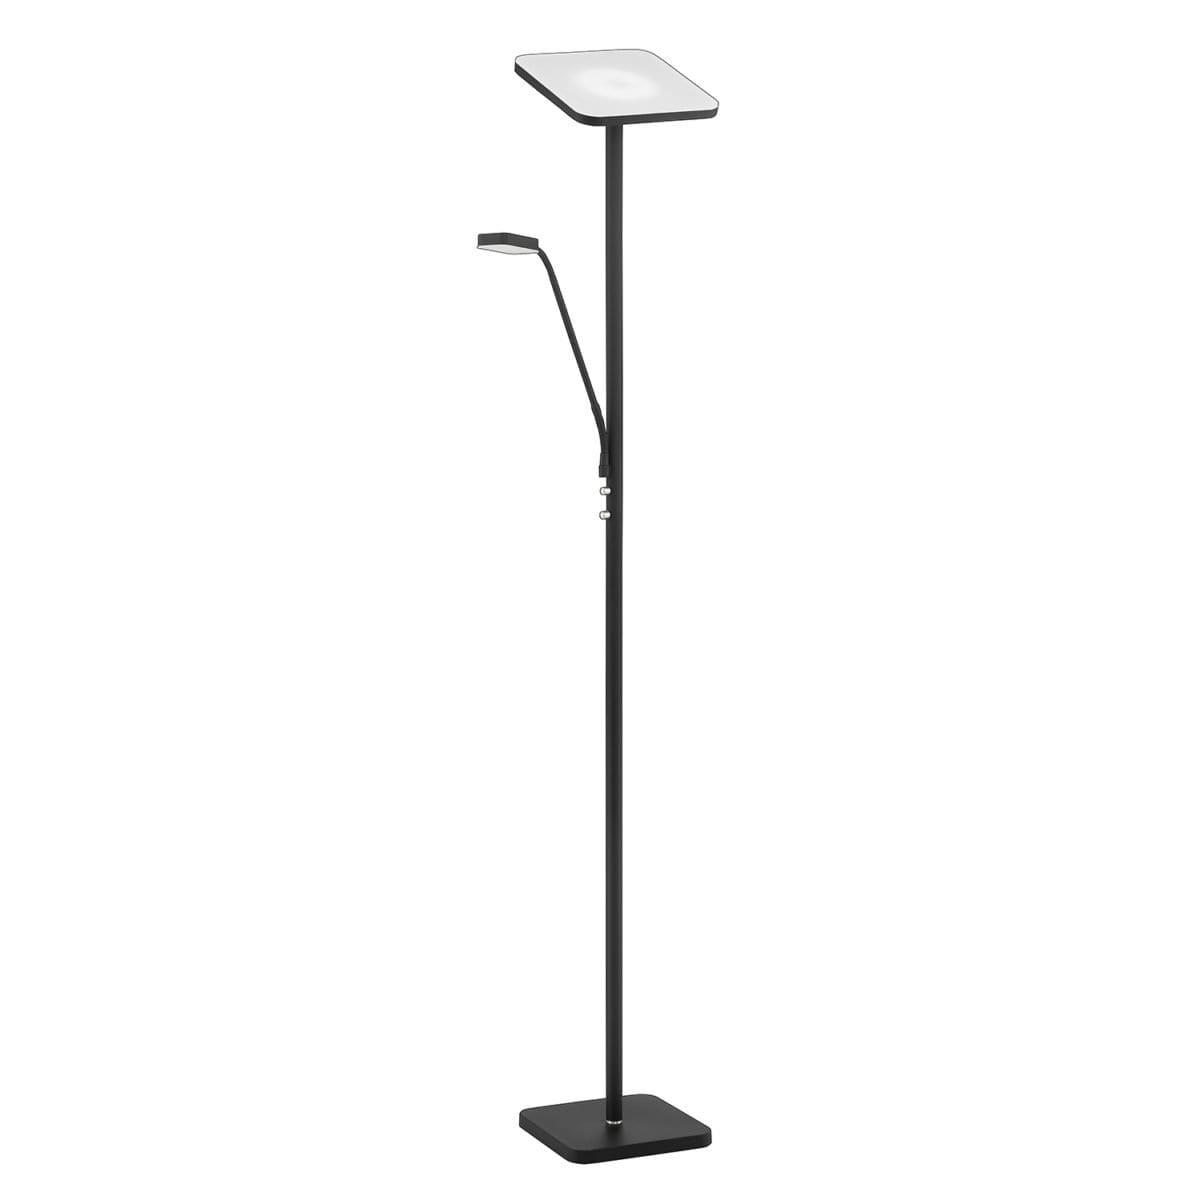 148 TC 5012 BLK/SN LED Torchiere with Reading Light Available in Black with Satin Nickle  or Satin Nickle Regular Price $333.99 Sale Price $233.99